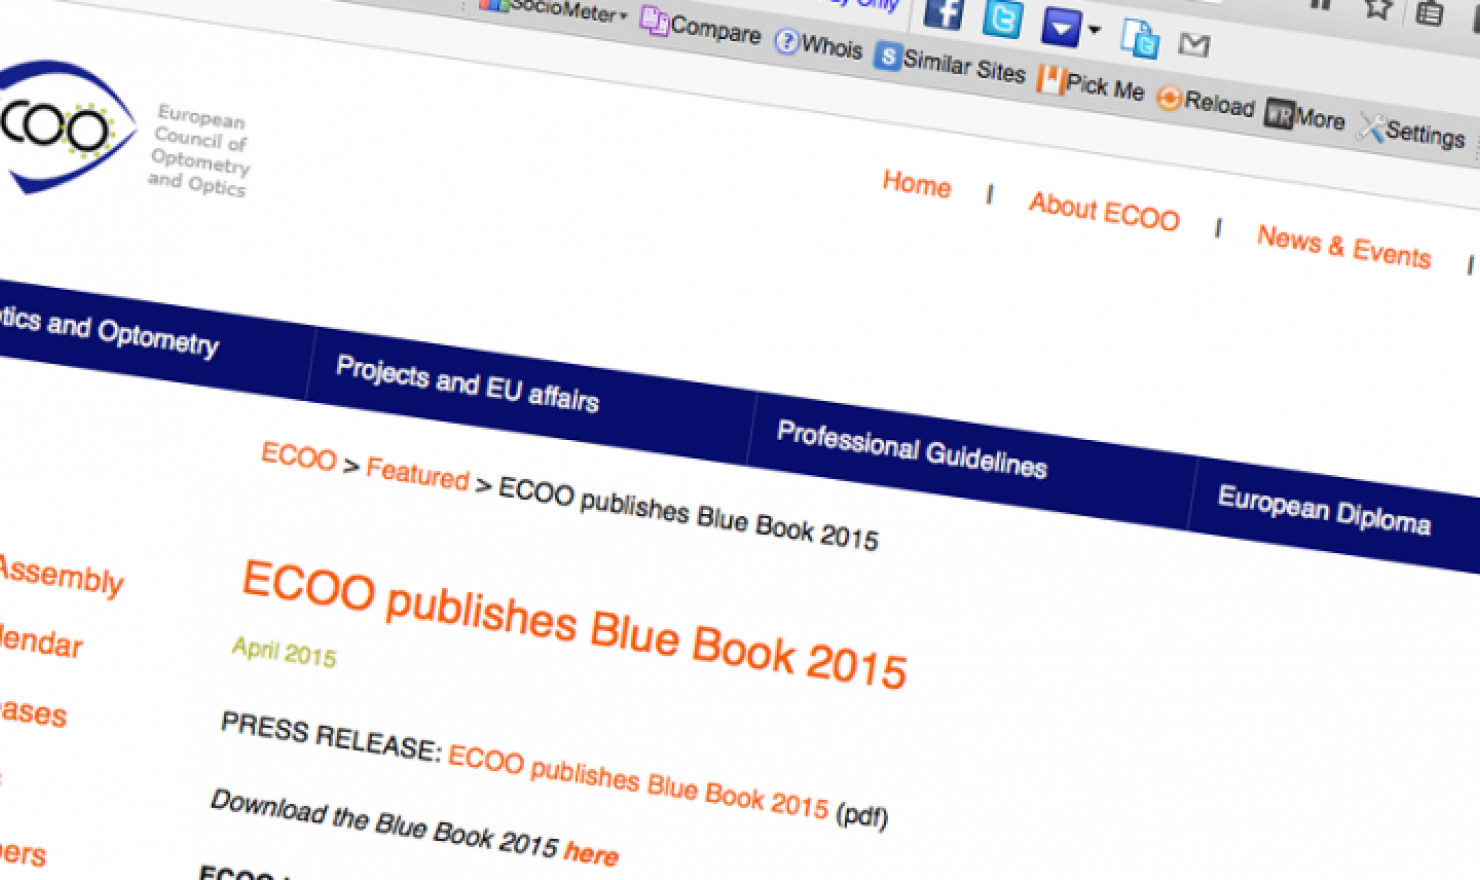 Blue Book 2015 ECOO